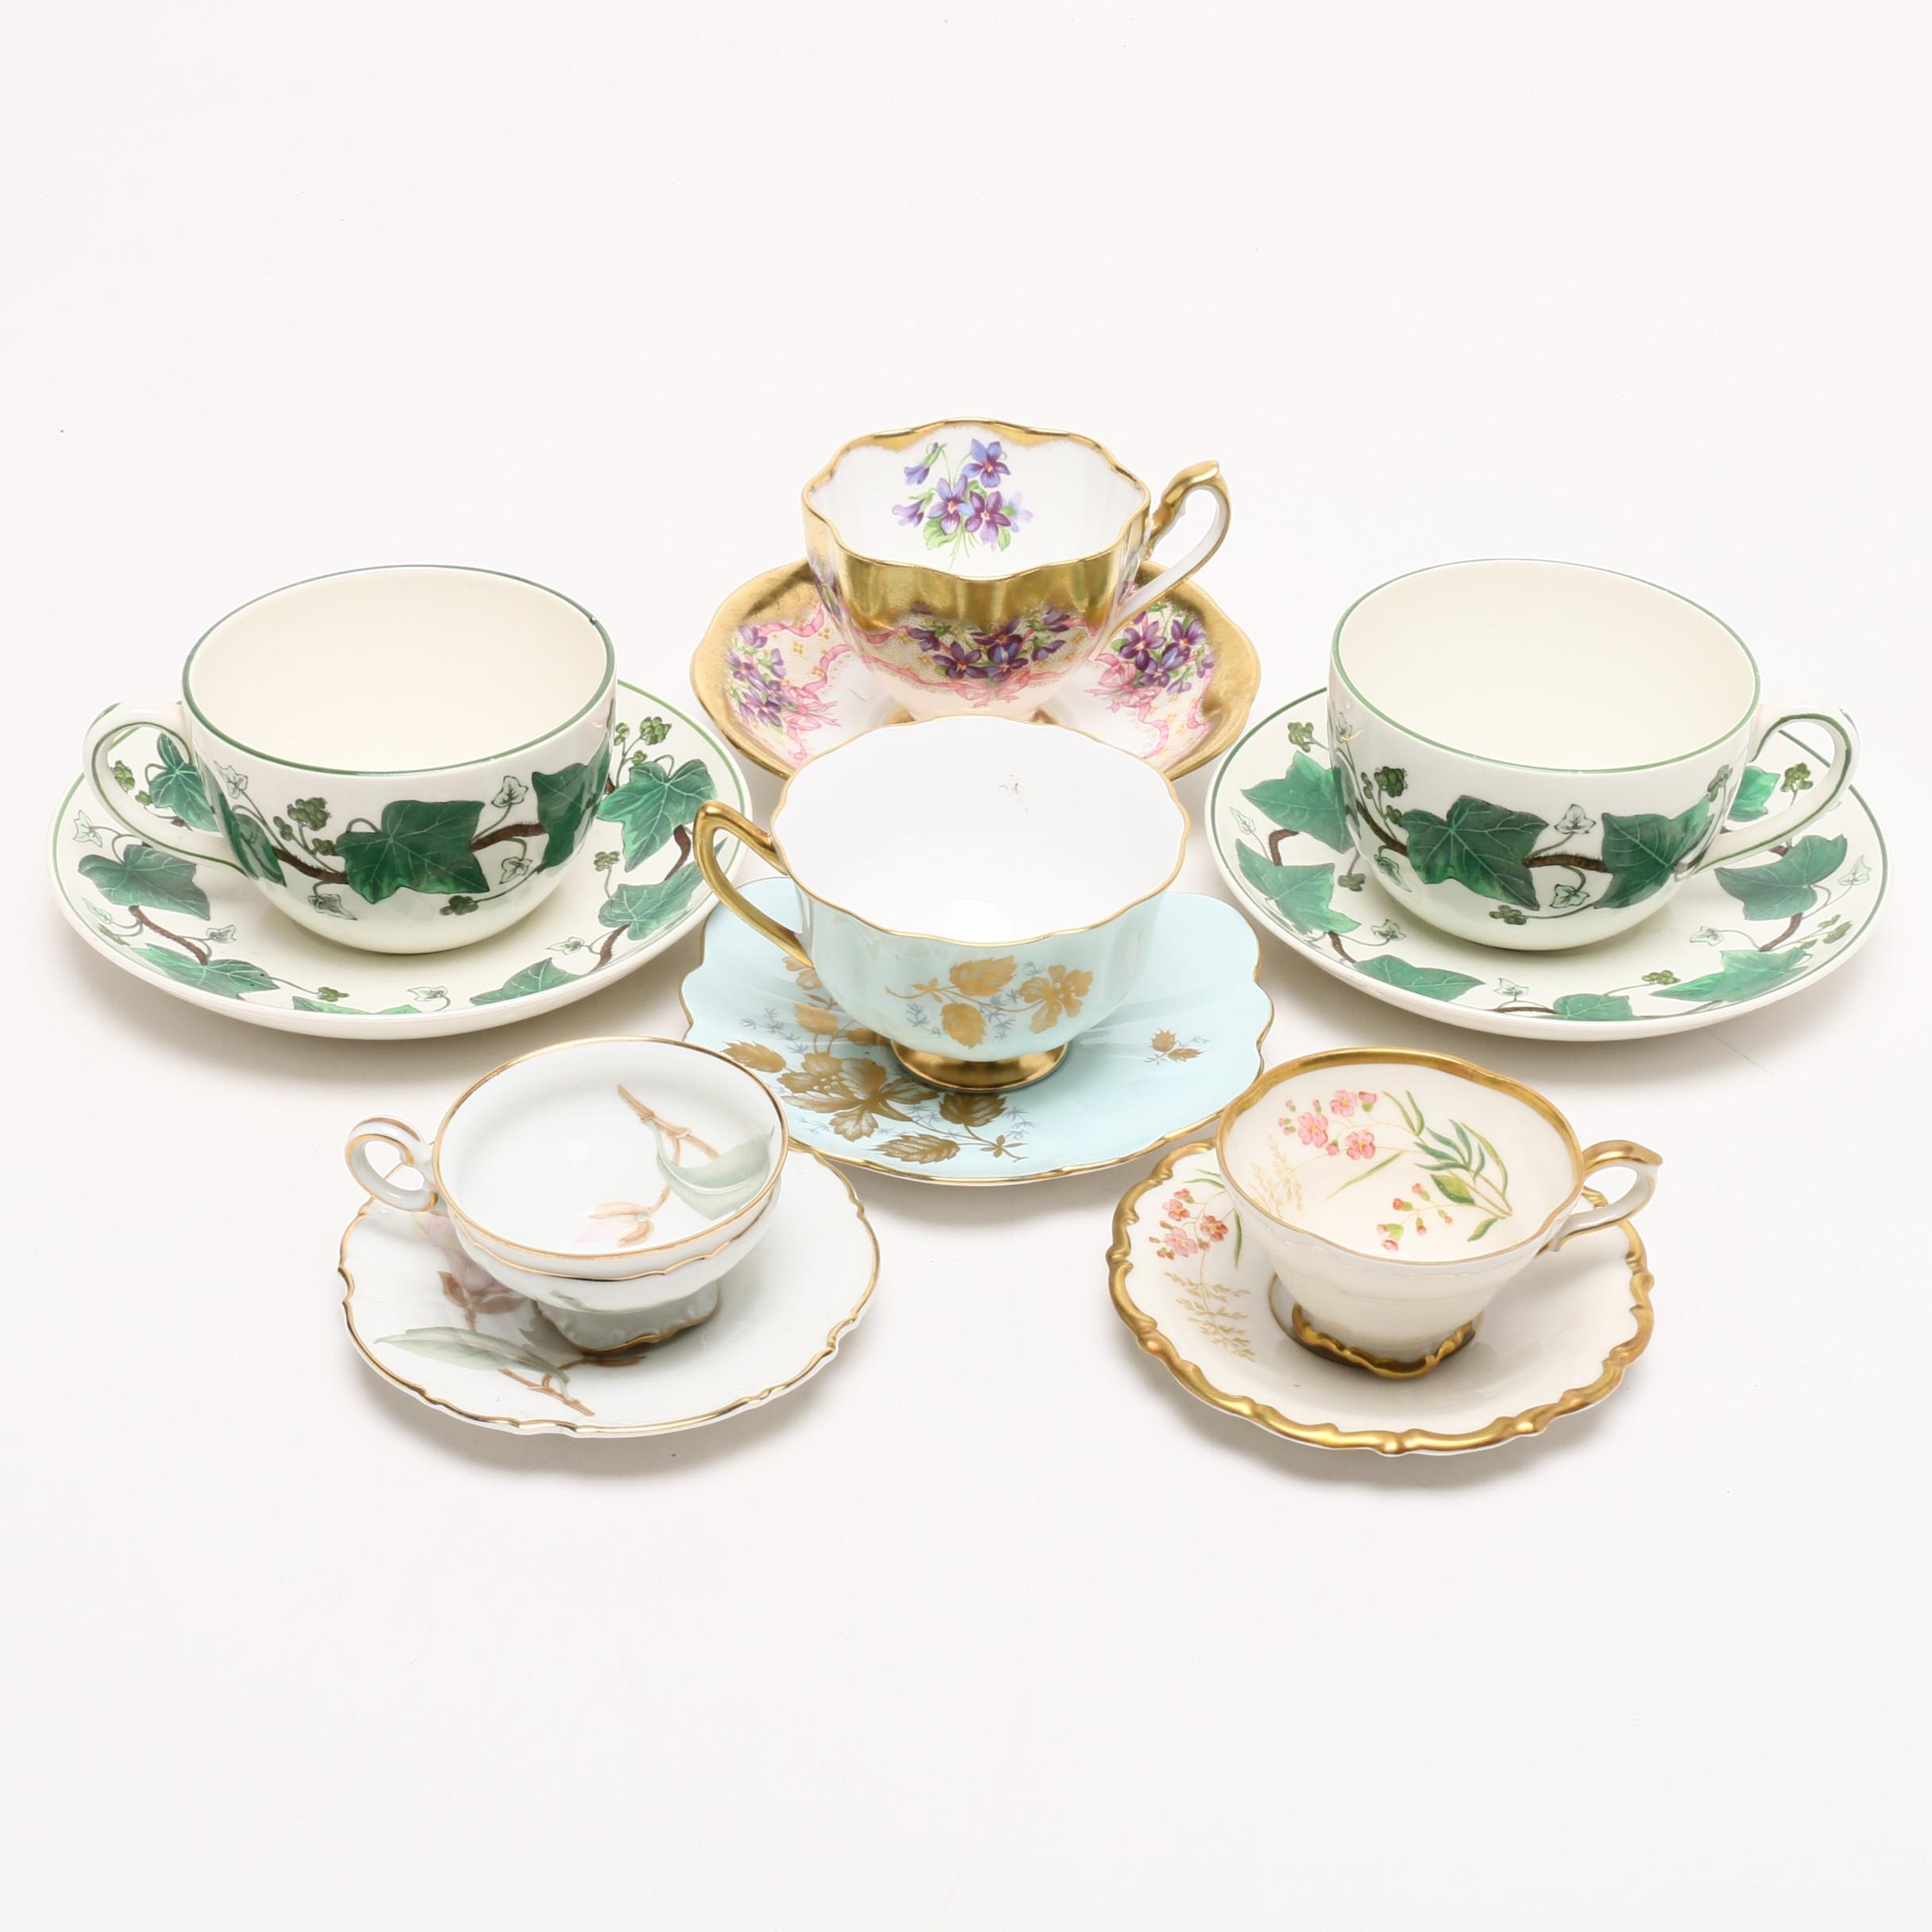 Wedgwood, Shelly, Queen Anne, Linder, and Hutschenreuther Teacups and Saucers